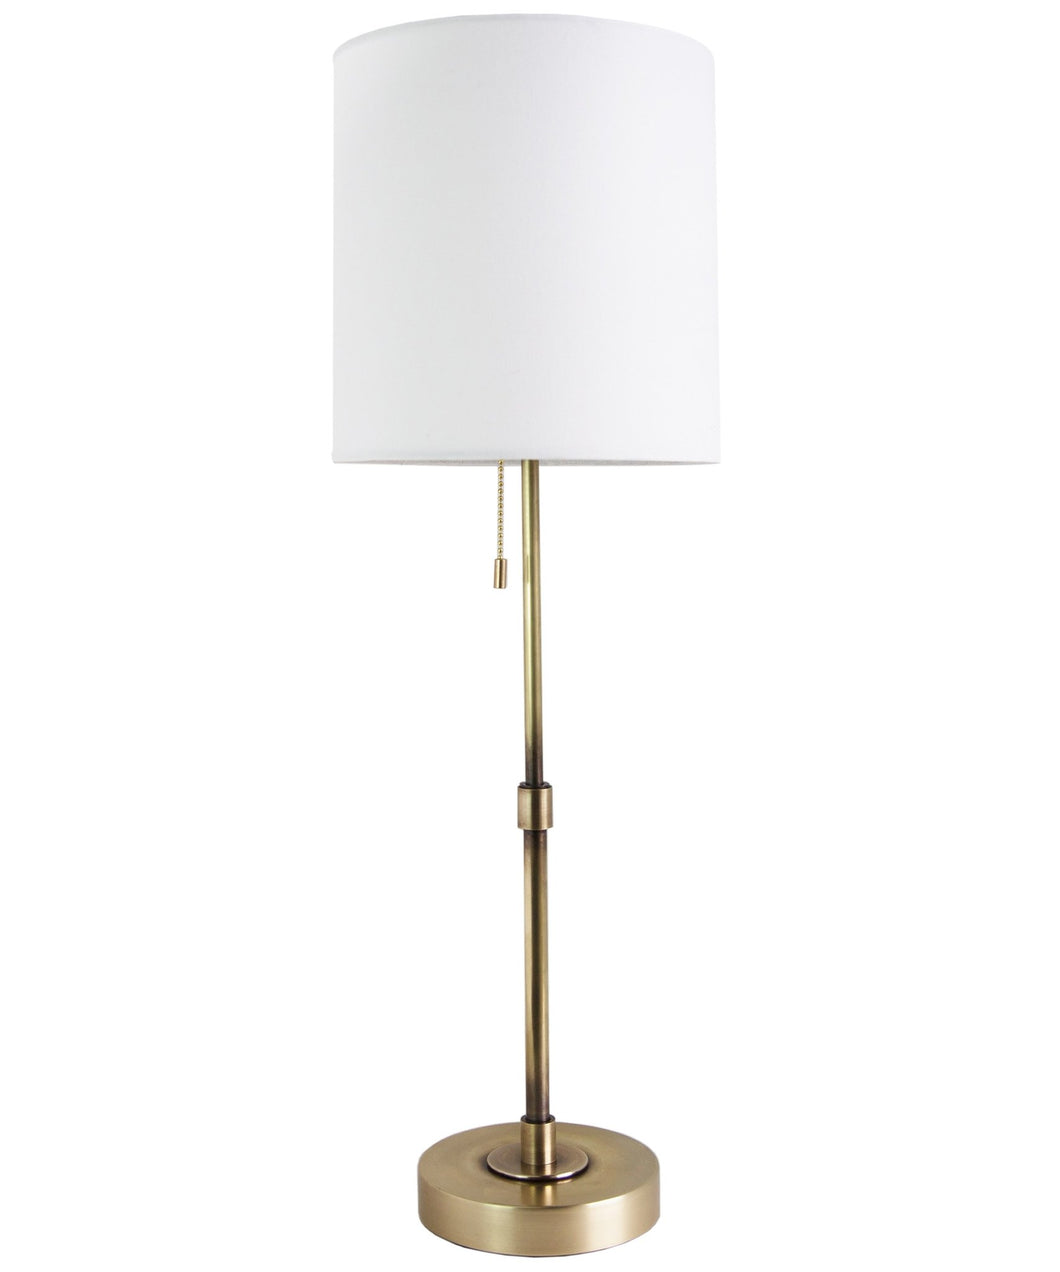 Annapolis Tall Table Lamp, Antique Brass